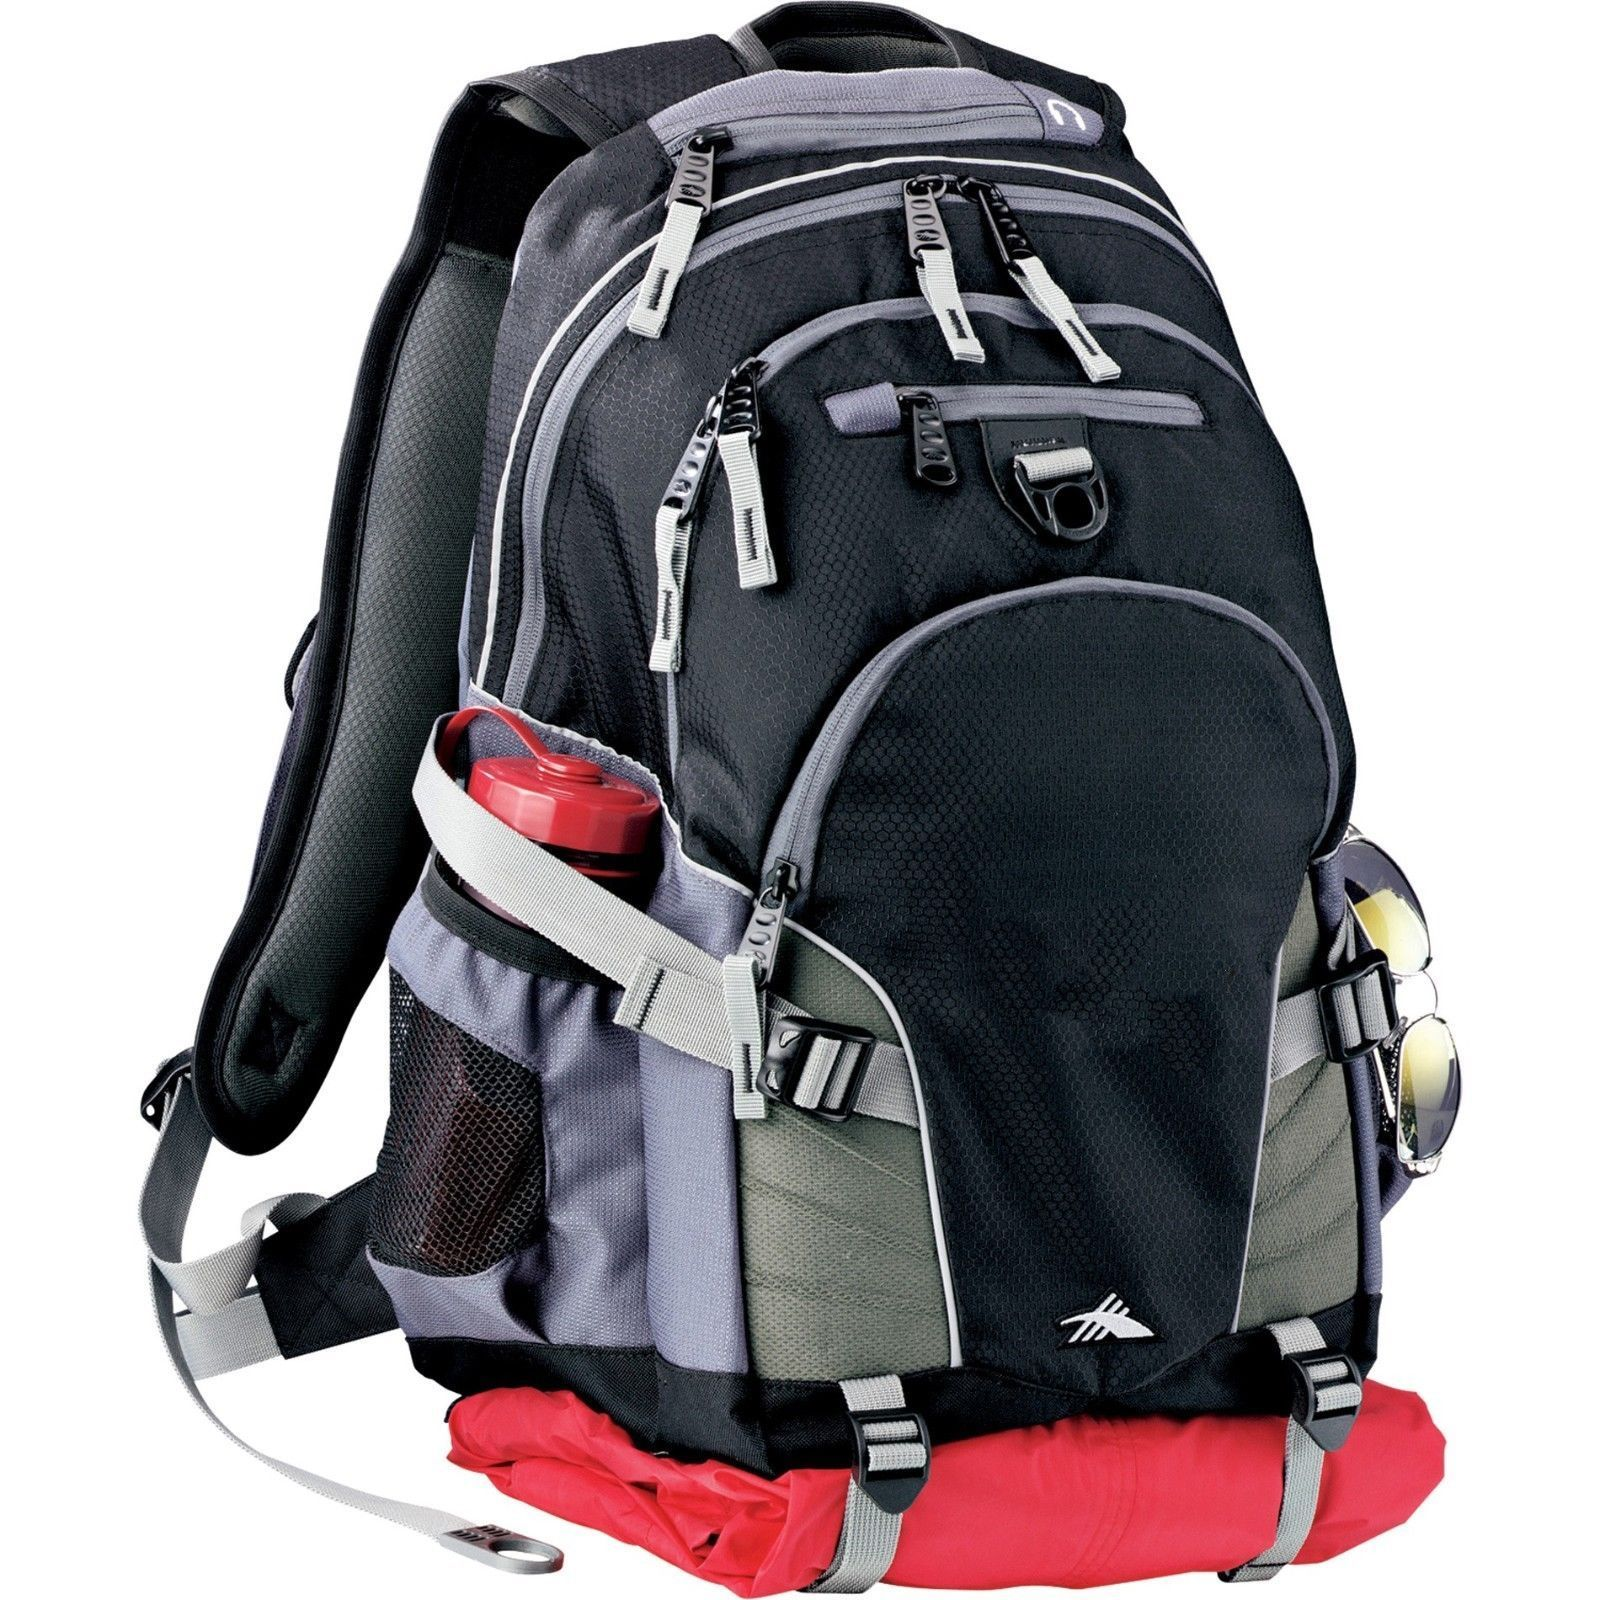 Best Rated Backpacks WWOMGpCL